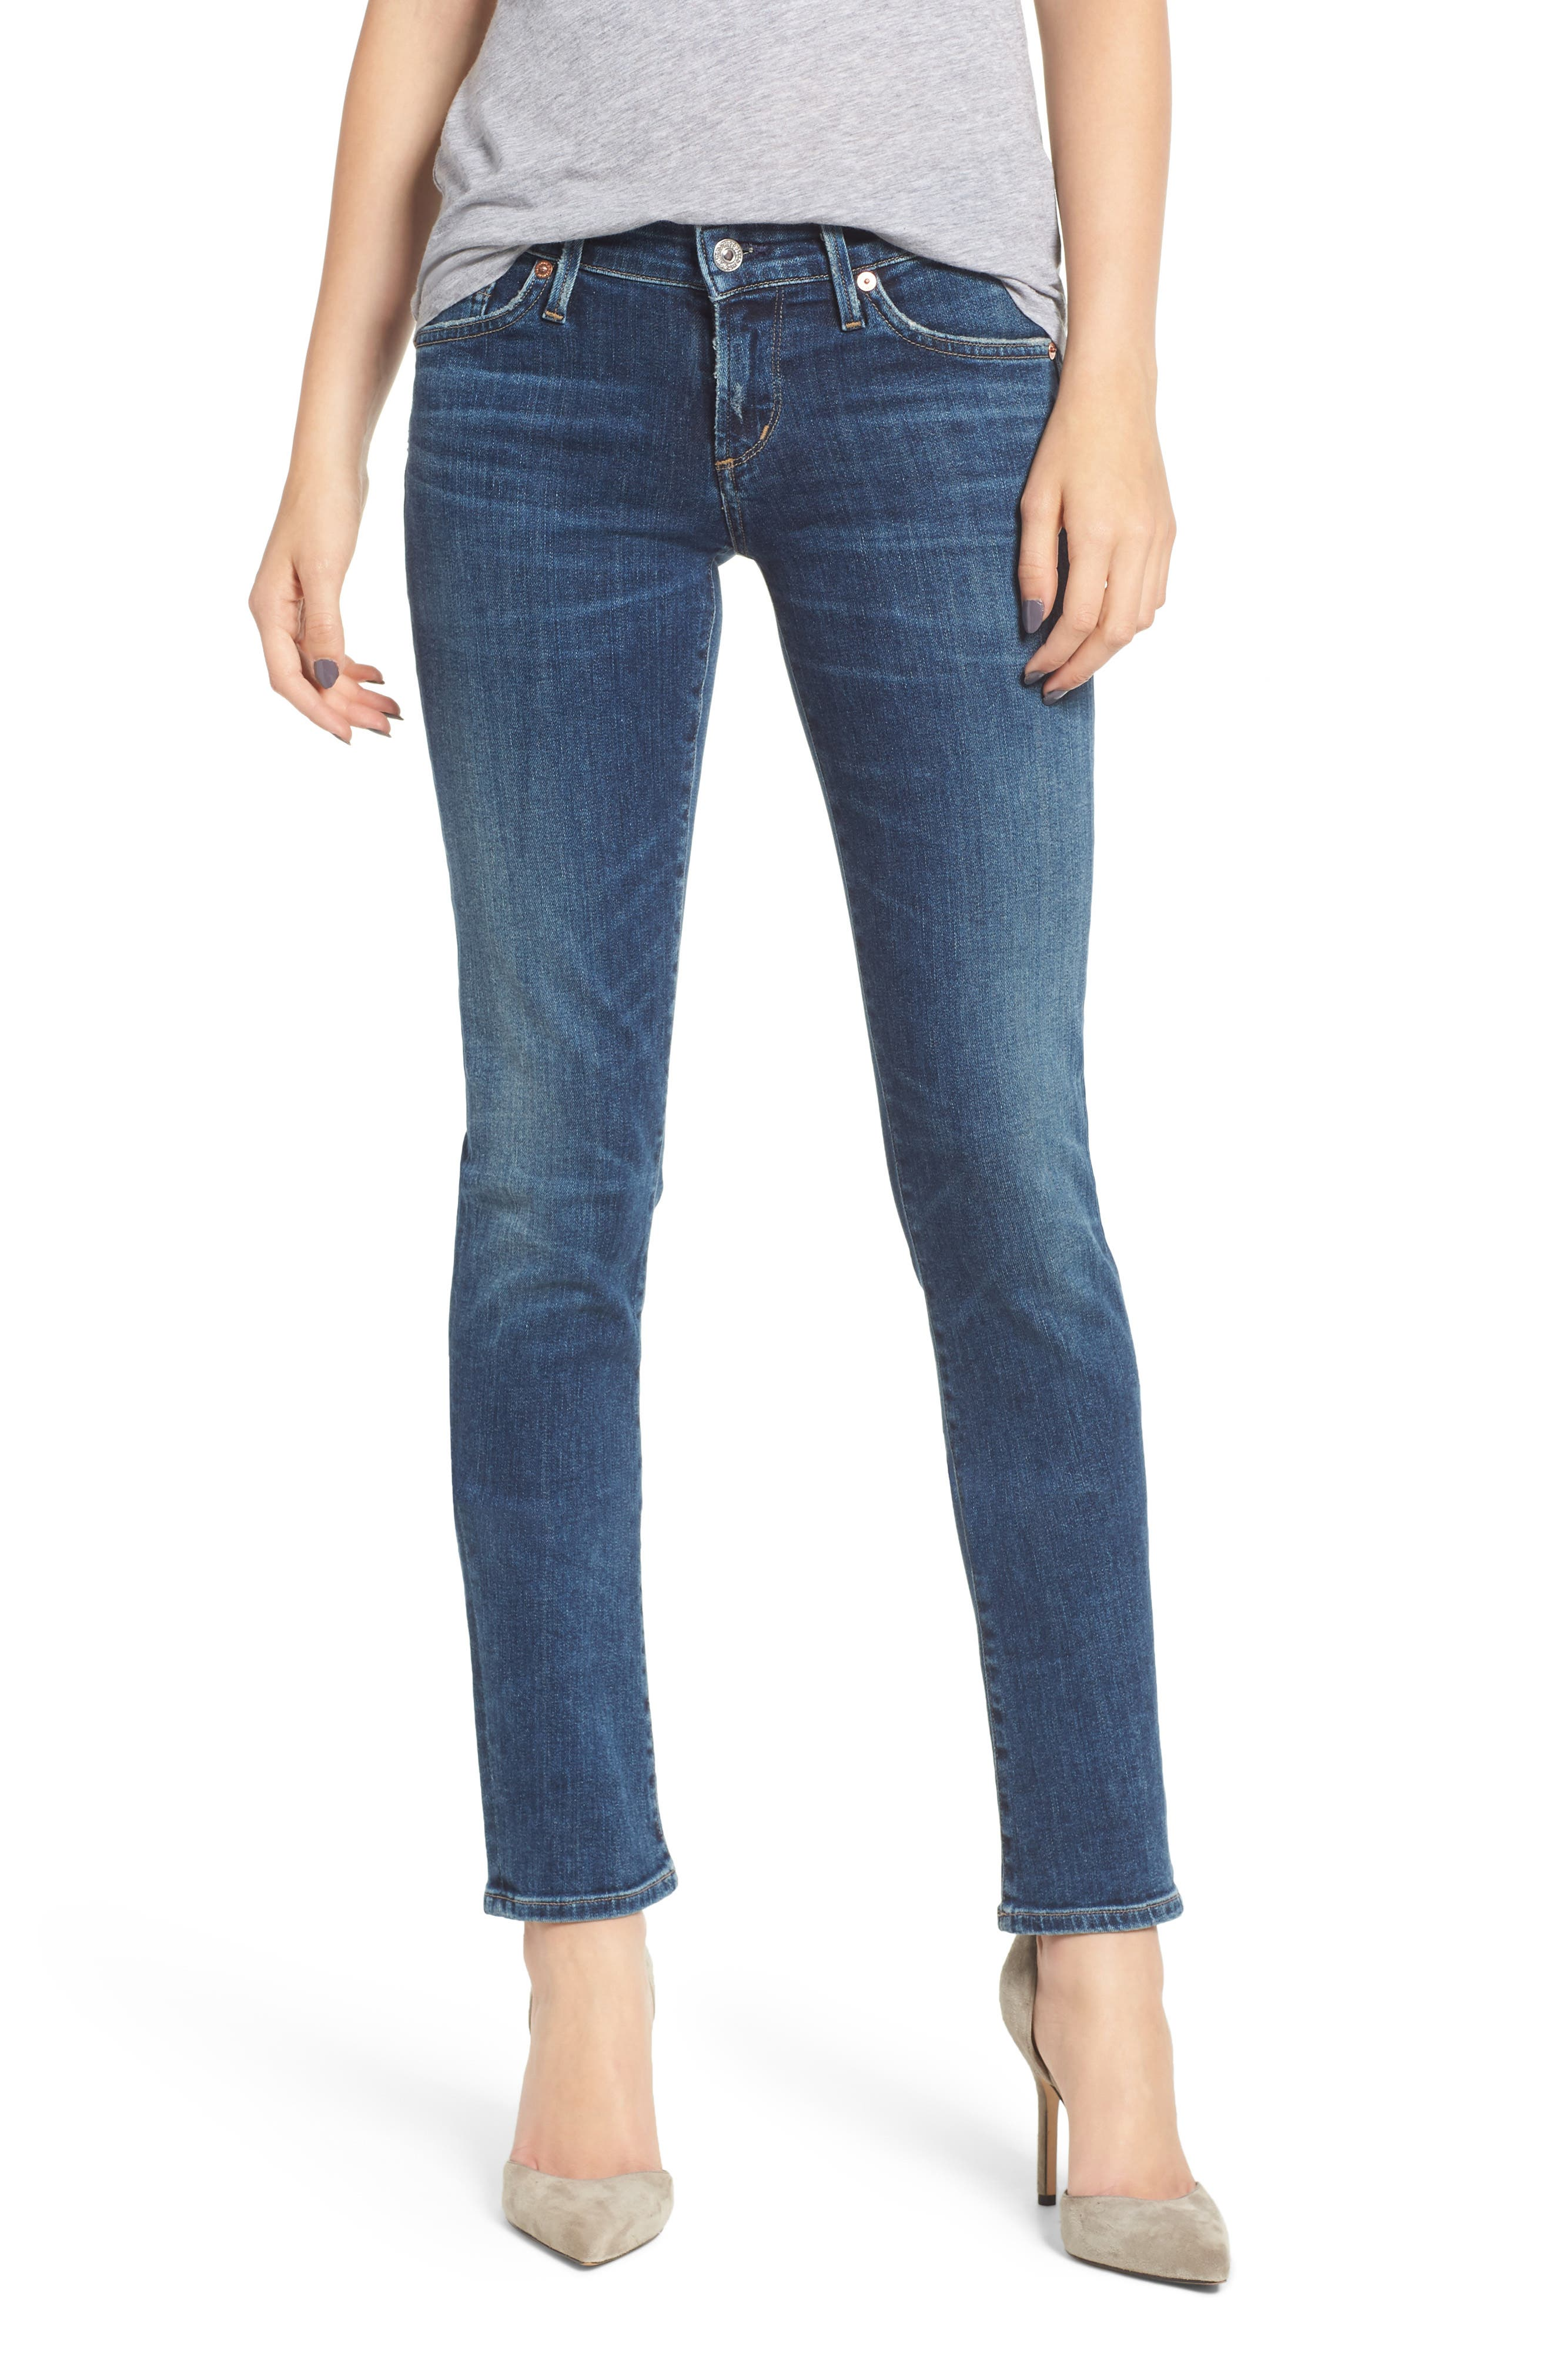 CITIZENS OF HUMANITY Racer Slim Jeans, Main, color, CASPIAN